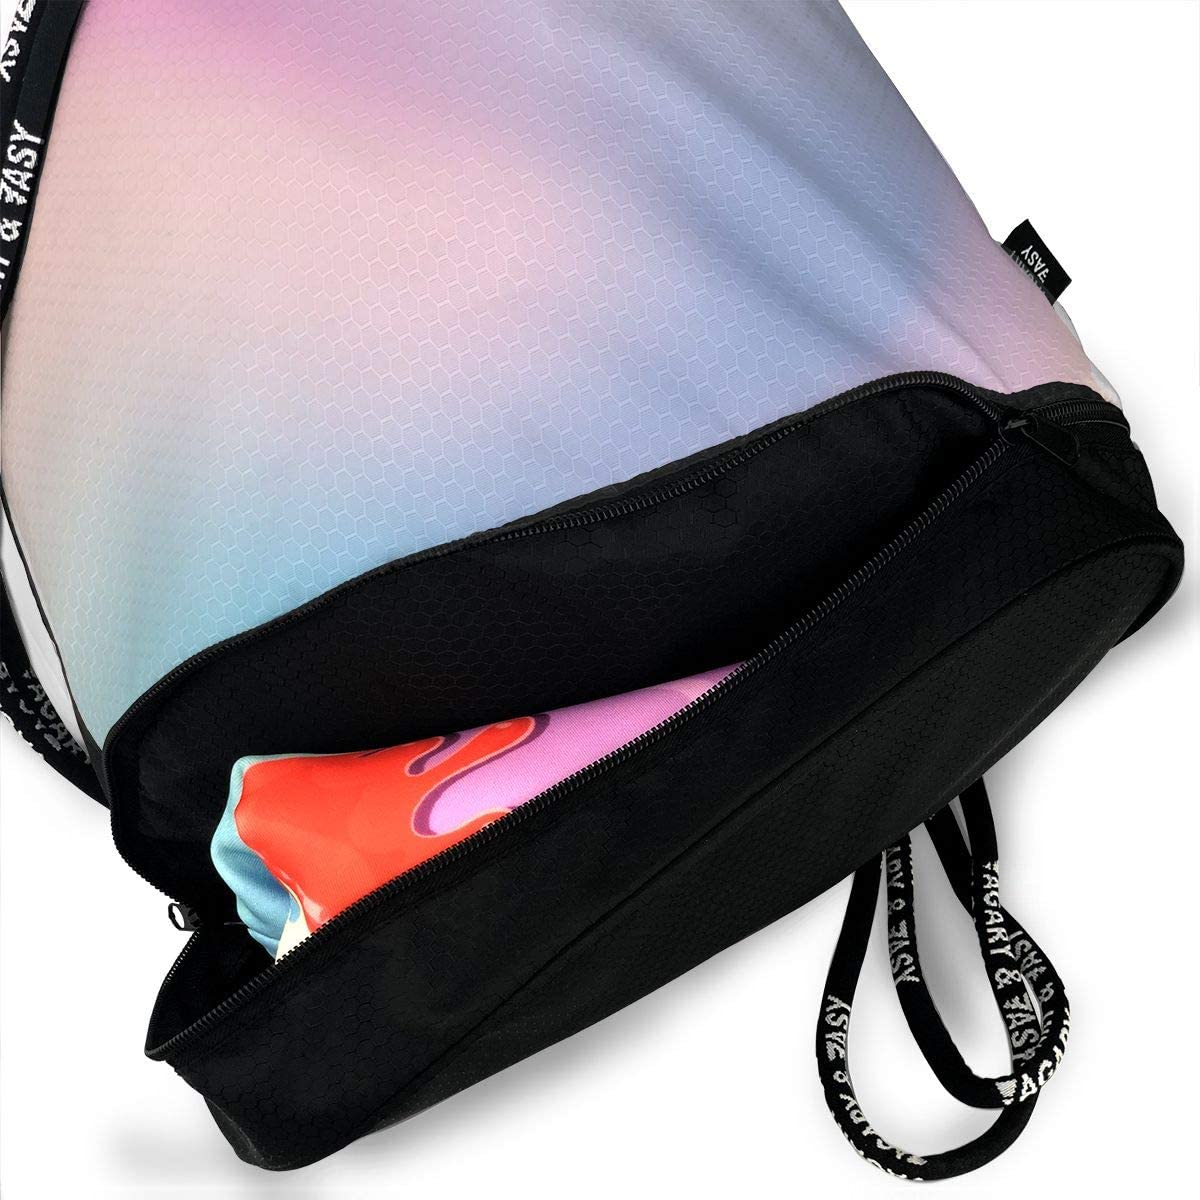 Seuriamin Abstract Blurry Colors Composition Sweet Daydream Fantasy Bundle Mouth Pocket Bag